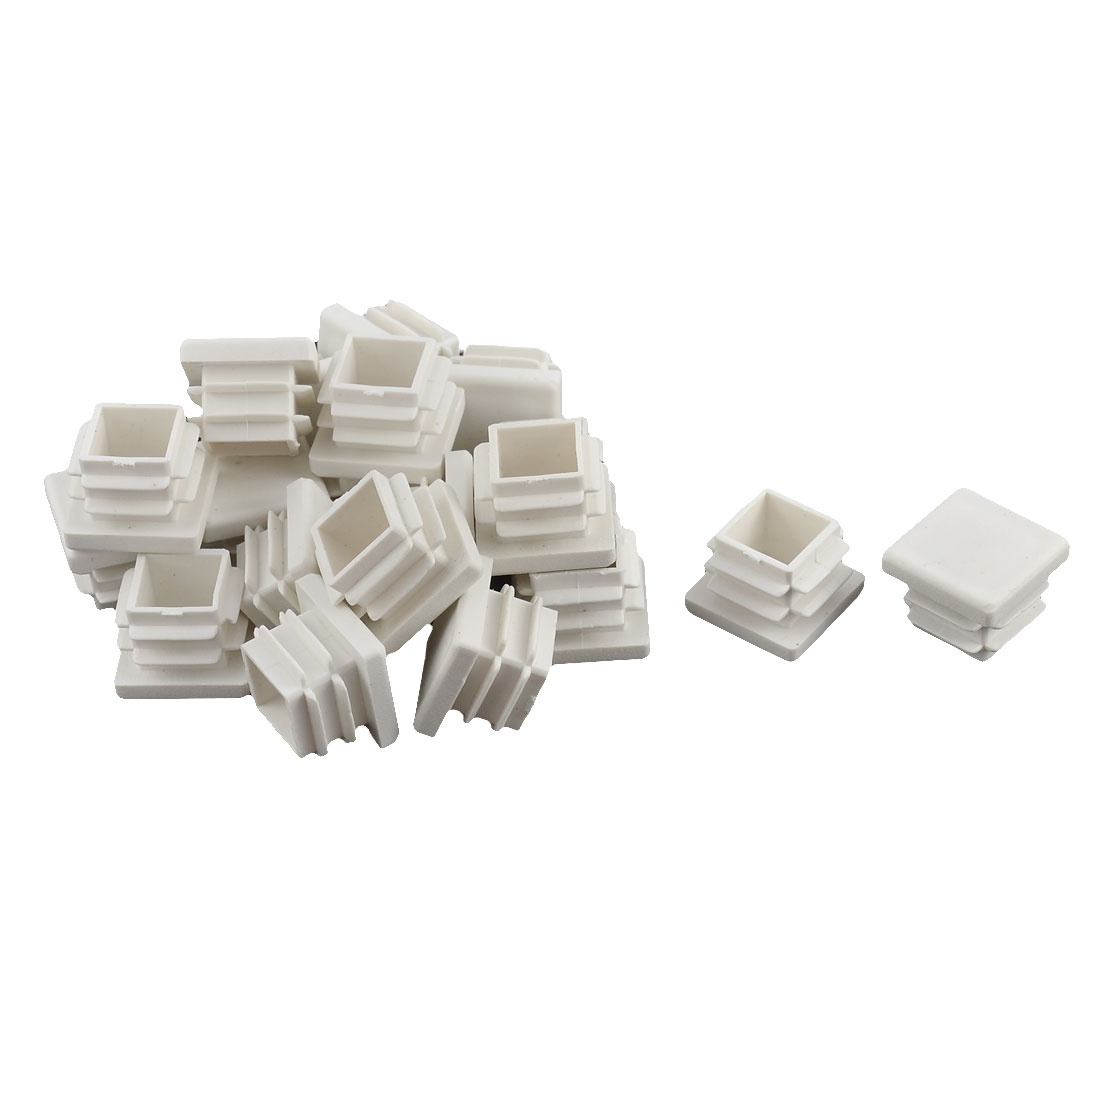 Plastic Square Tube Pipe Inserts End Blanking Caps Plugs White 17mm x 17mm 20 Pcs